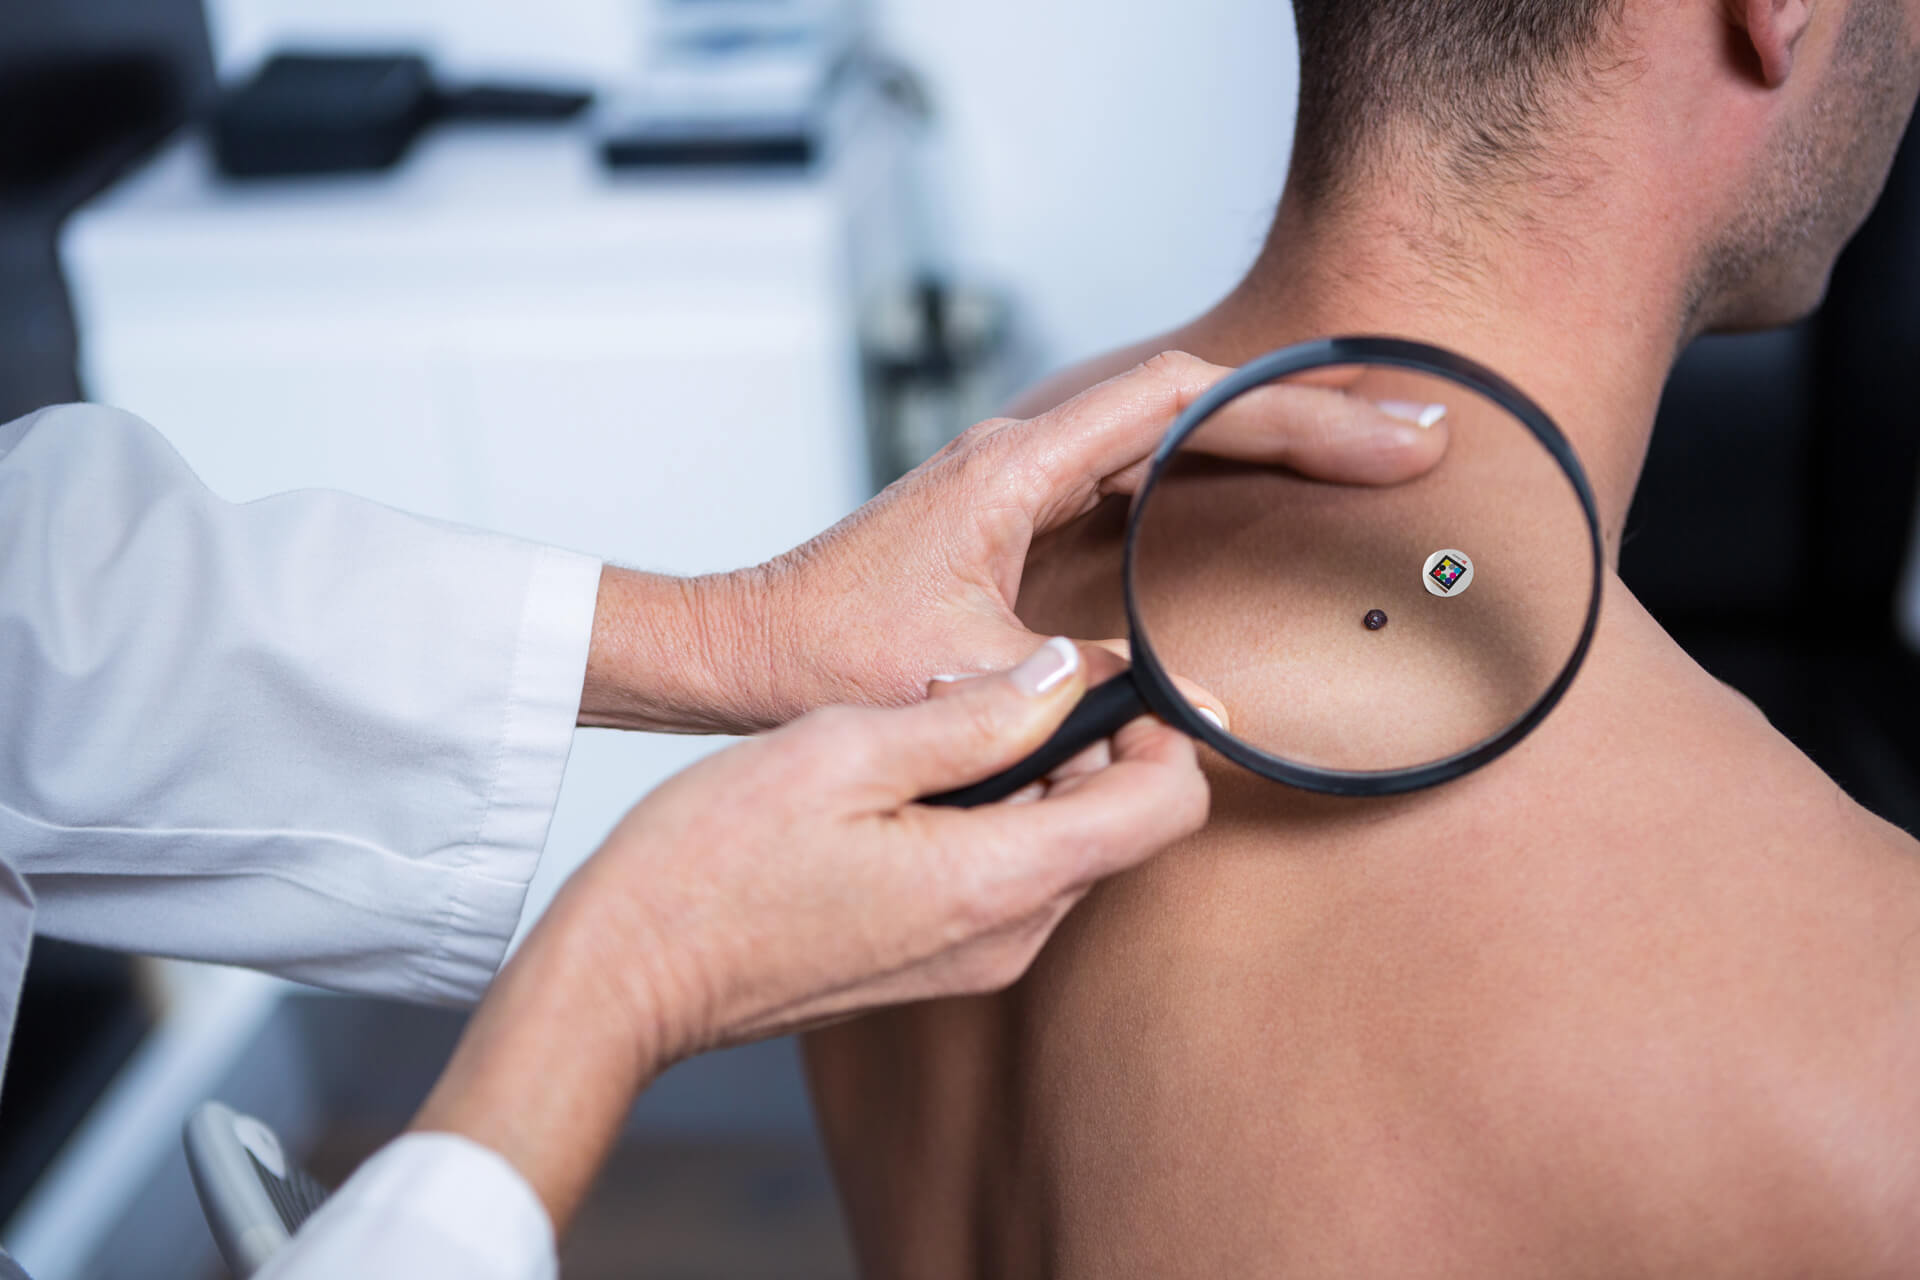 Dotcot assess mole with Scarletred Skin patch on the back of male patient